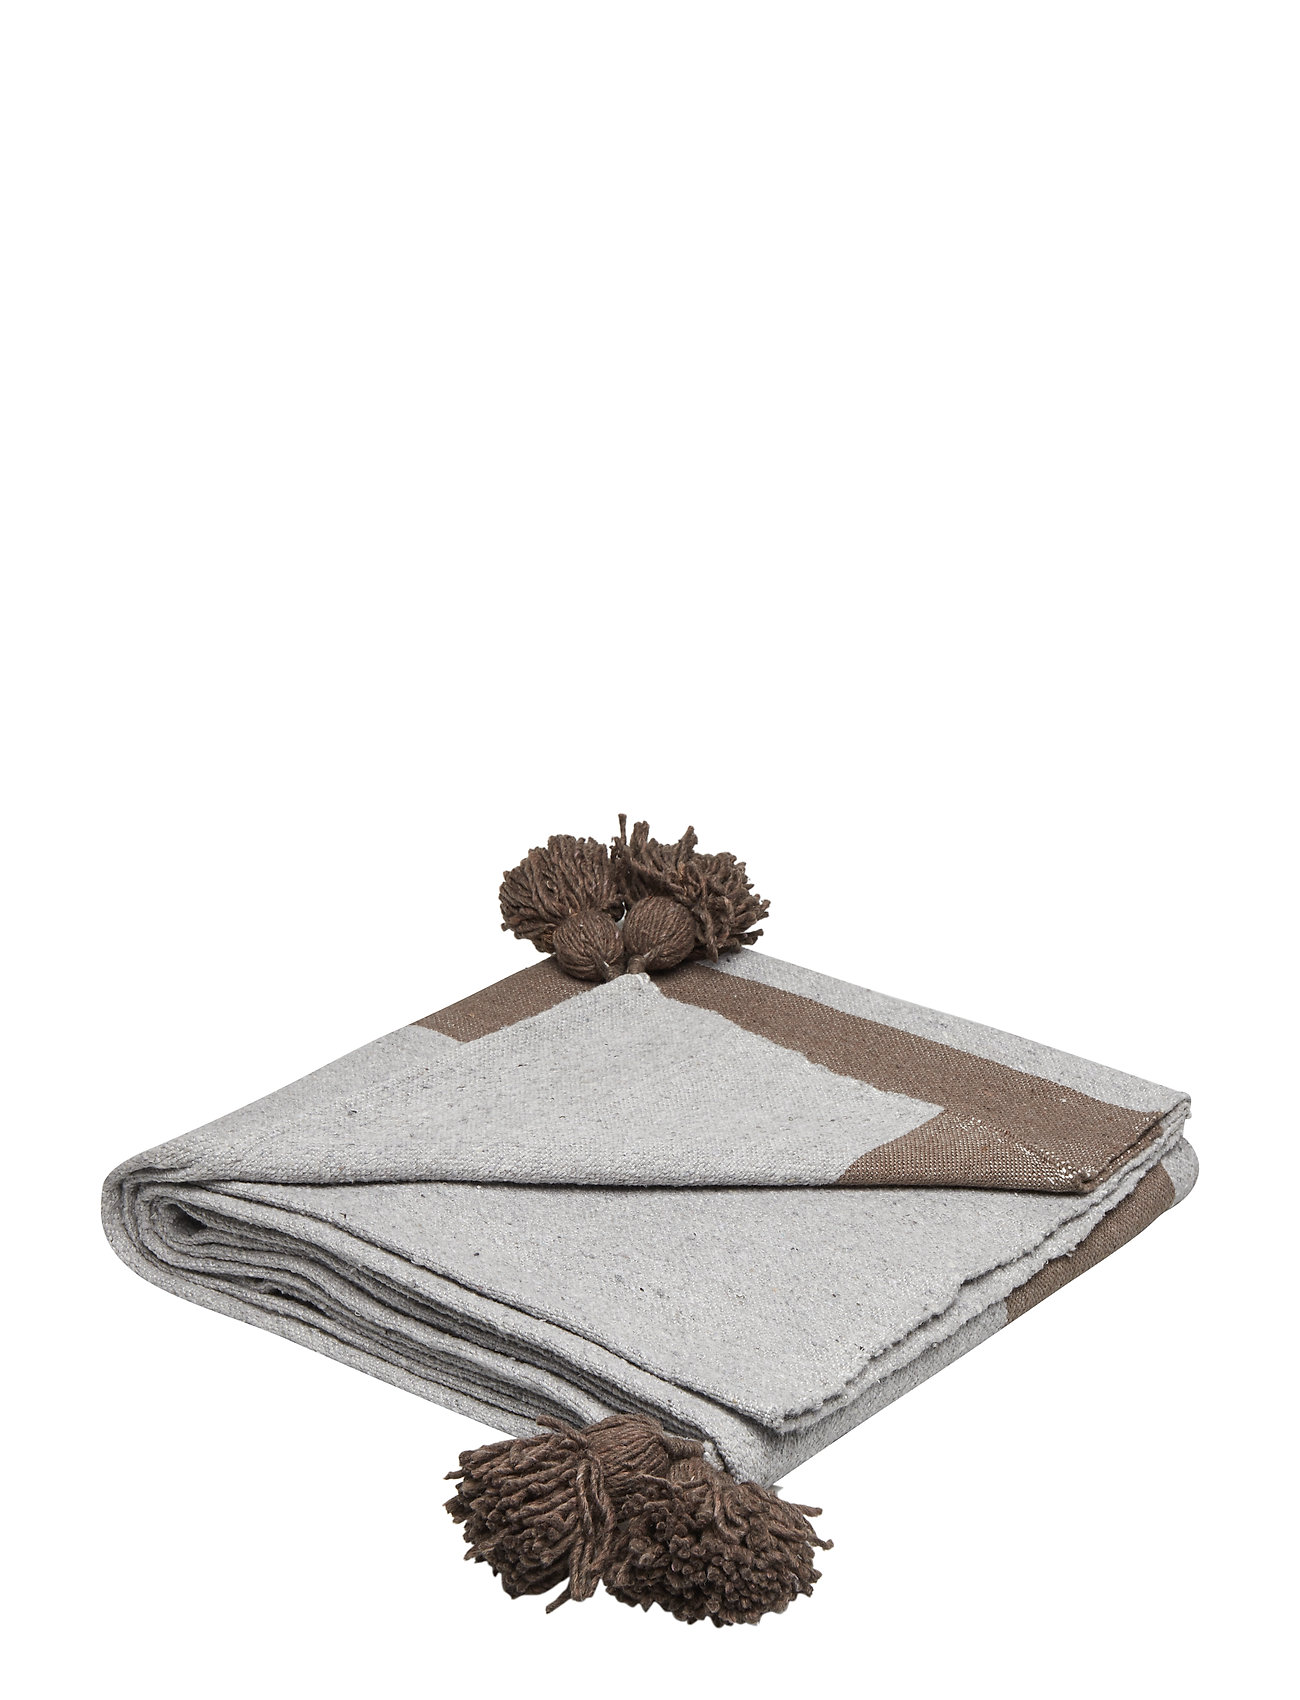 DAY Home Piles cotton blanket - GREY/BROWN